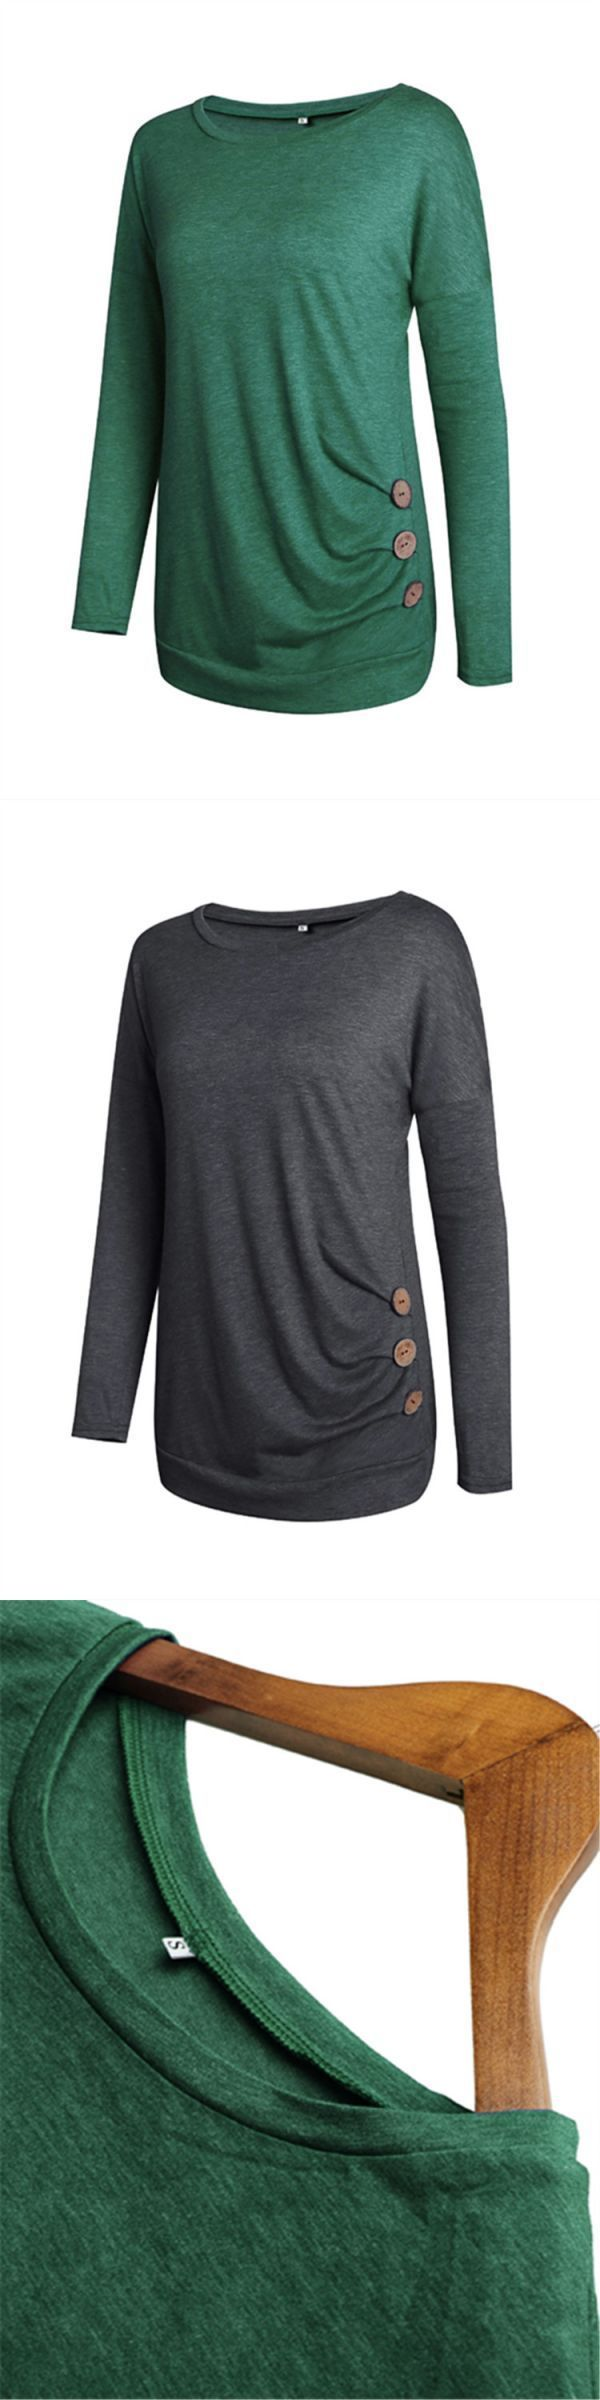 T shirt lost girl casual women long sleeve solid color t-shirt with button design #baby #girl #t #shirts #uk #eddie #bauer #womens #t #shirts #t #shirt #its #a #girl #womens #band #t #shirts